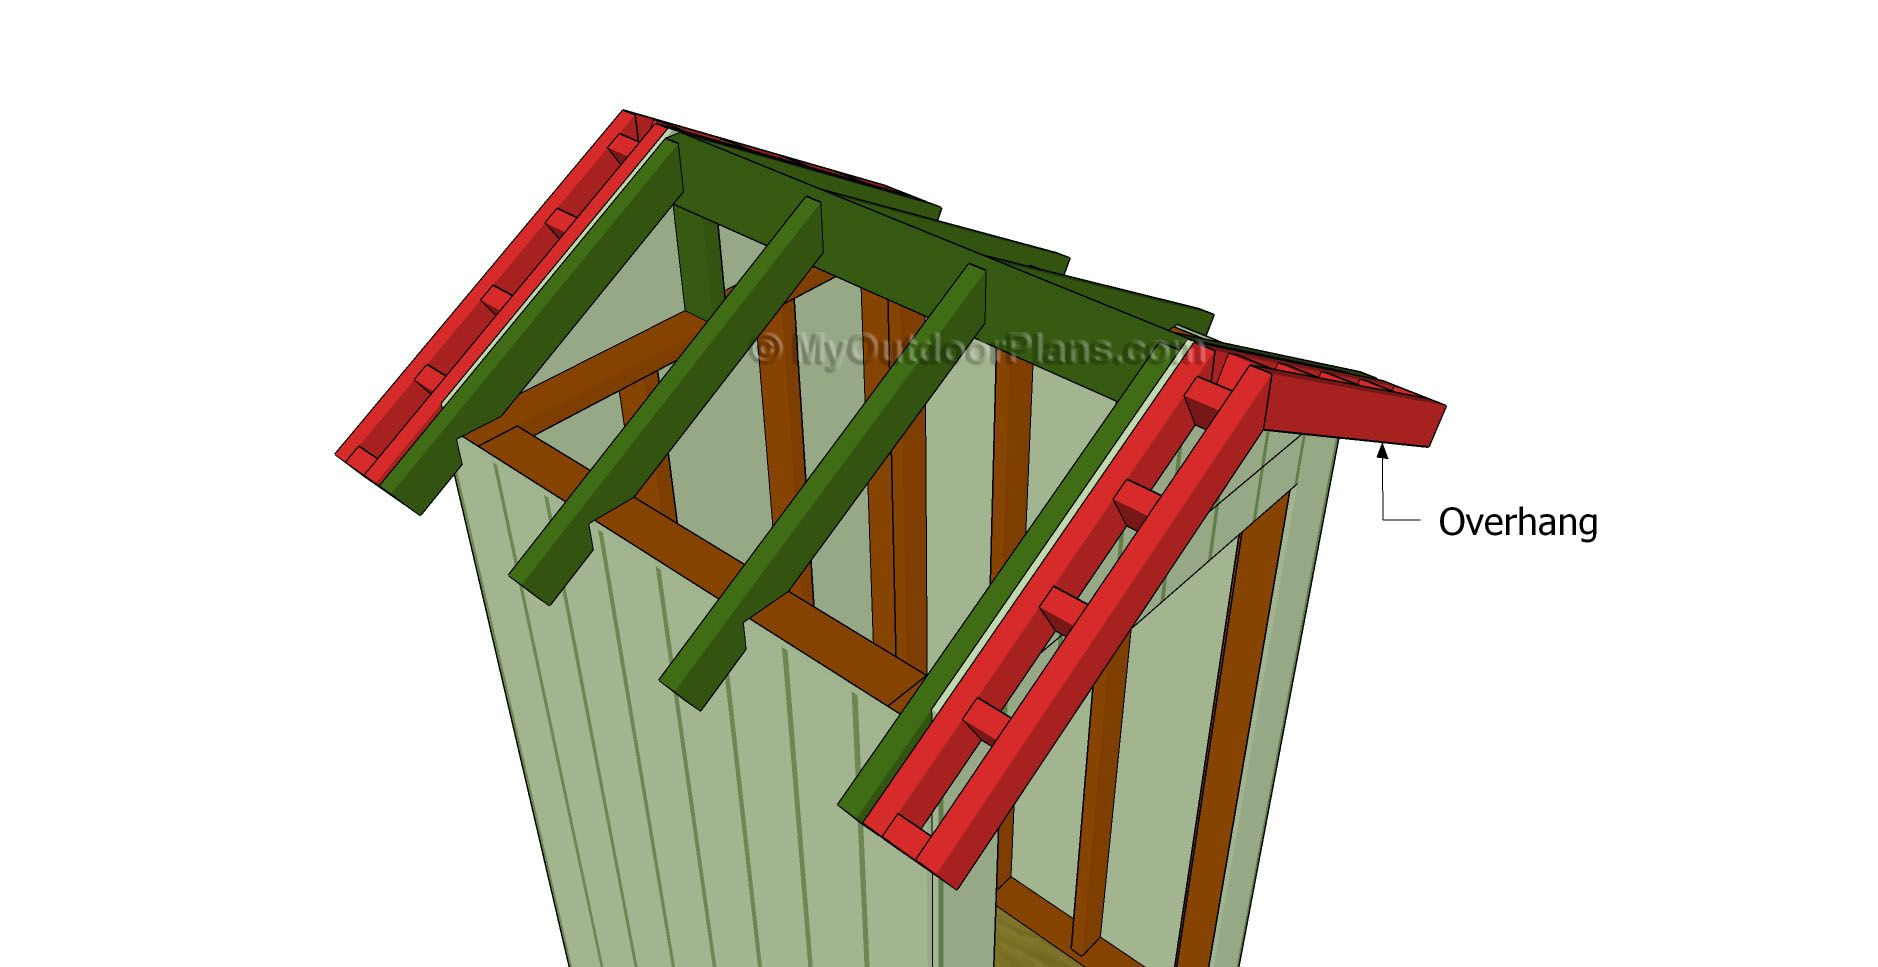 4x8 Shed Roof Plans Diy Shed Wooden Playhouse Roof Plan